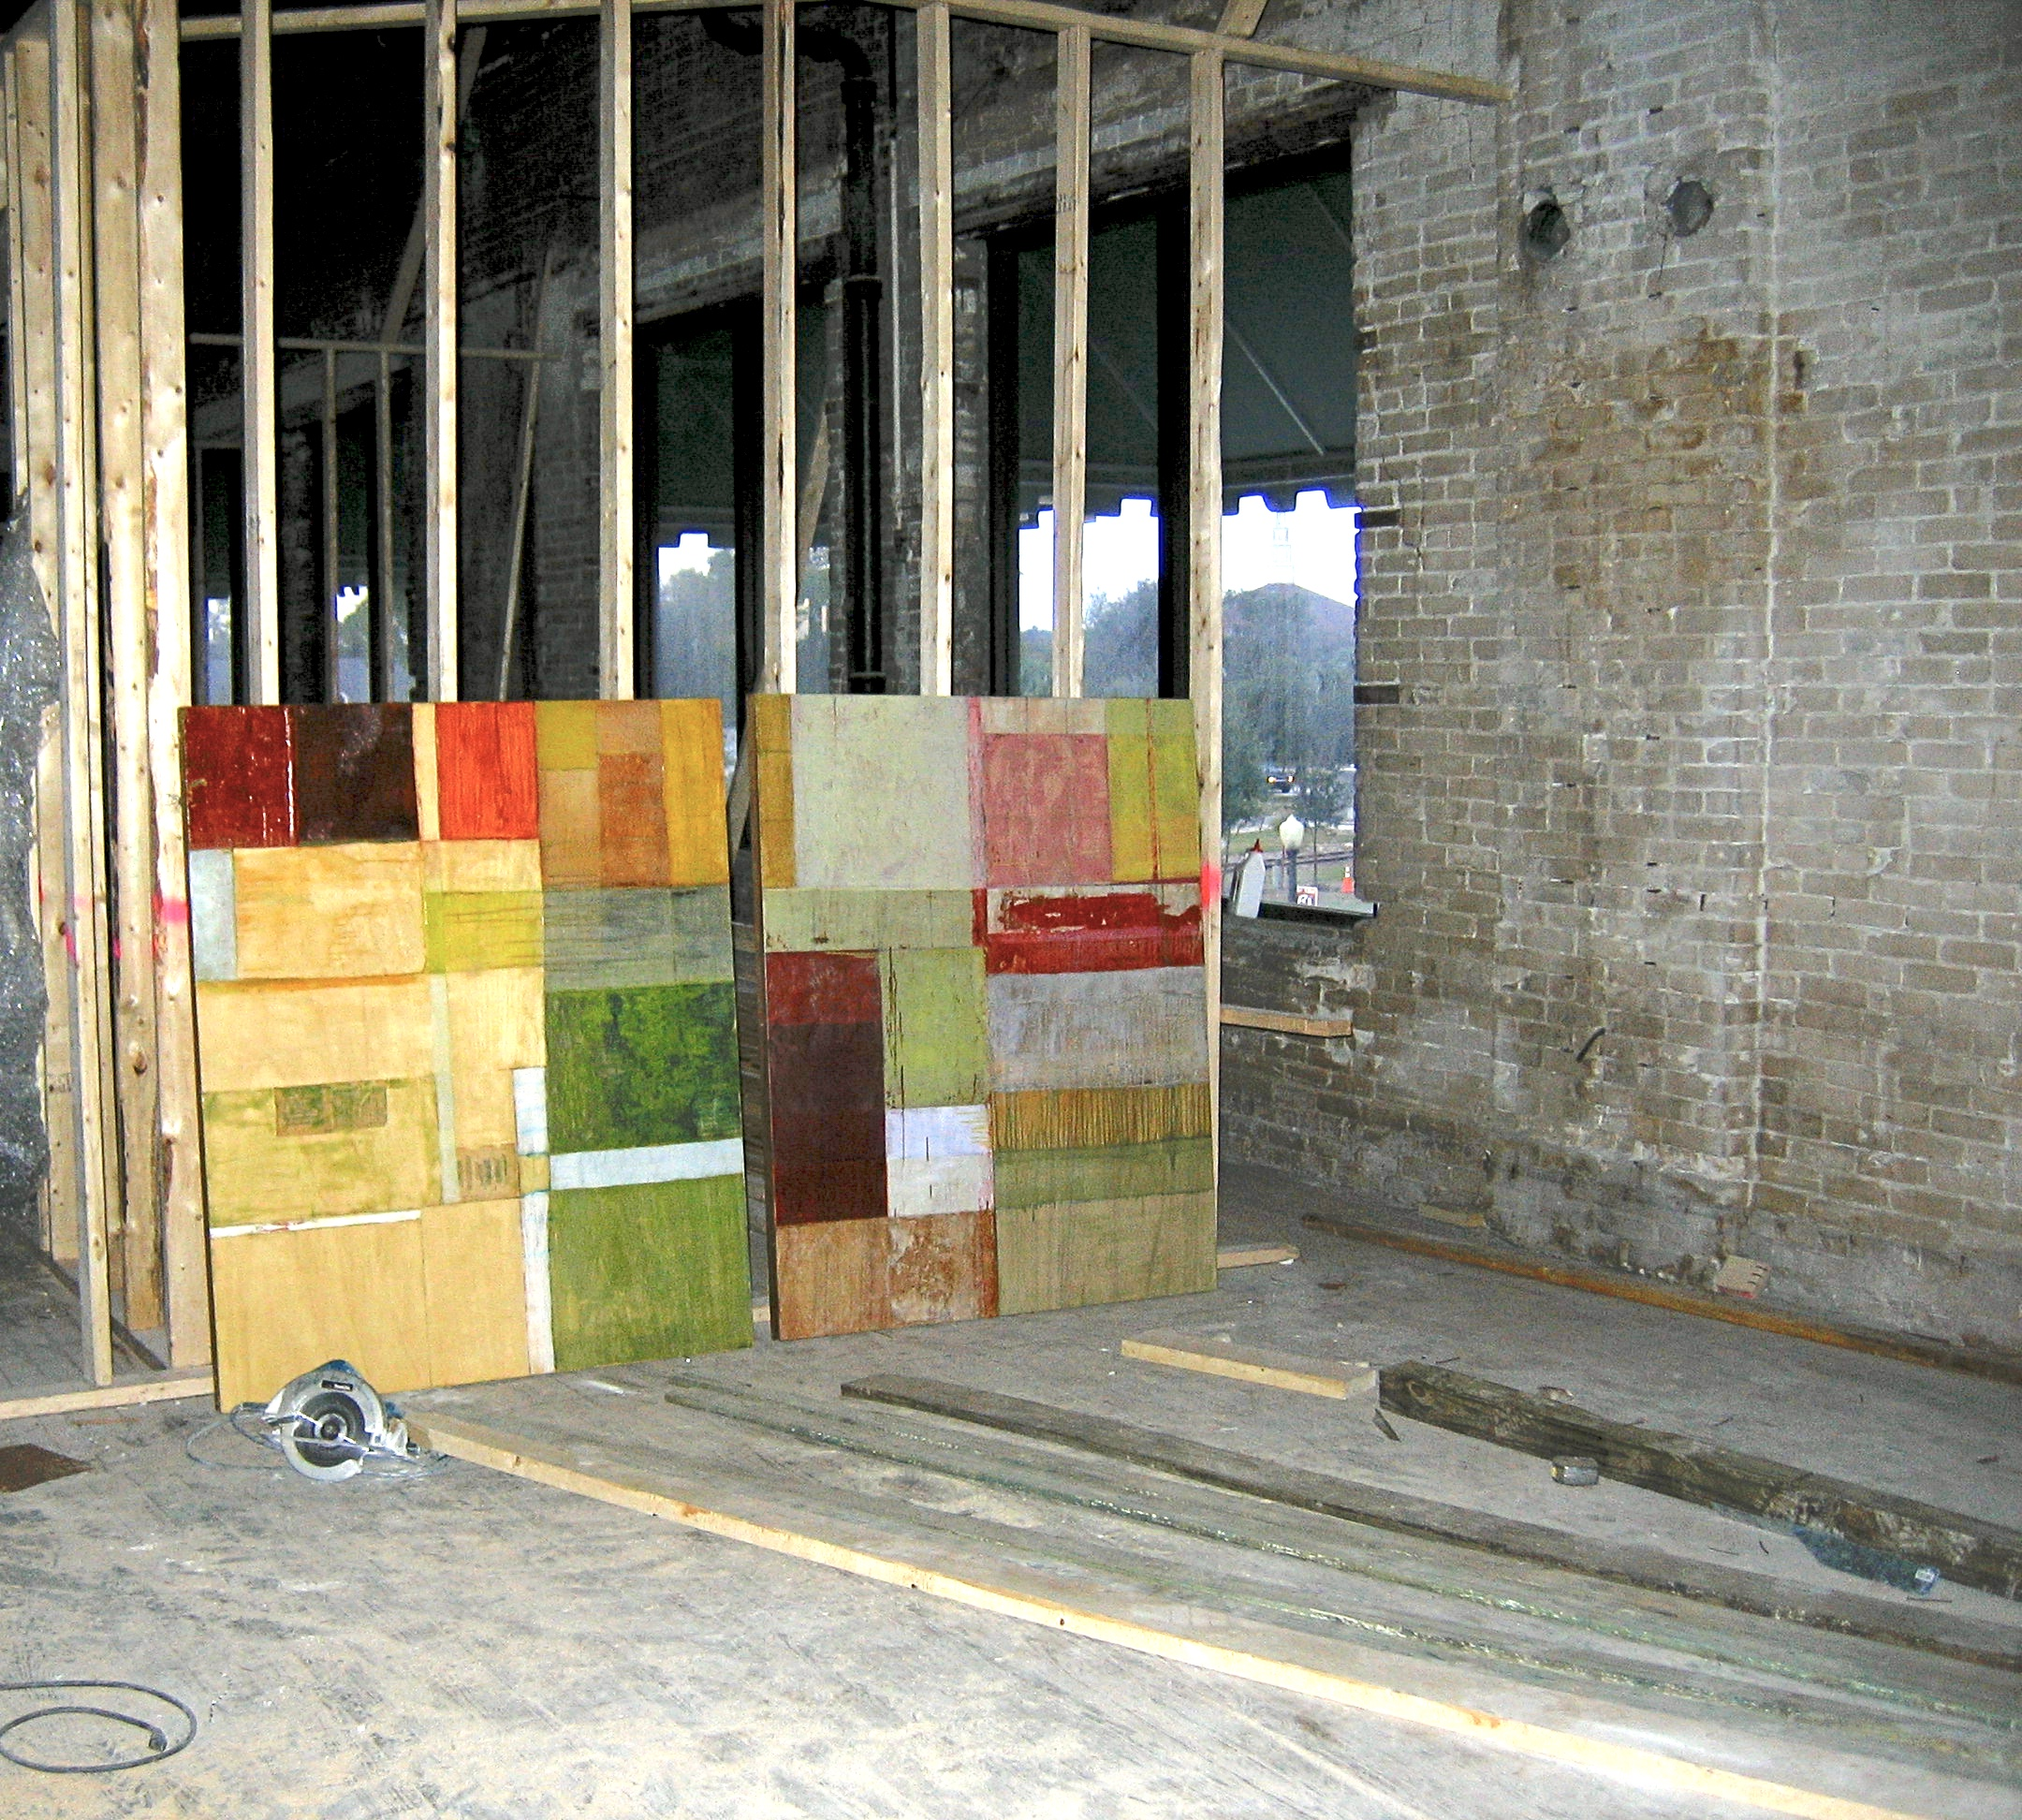 During construction, the Allyn Gallup Gallery of Sarasota loaned two pieces by Tremain Smith to guide the overall collection.